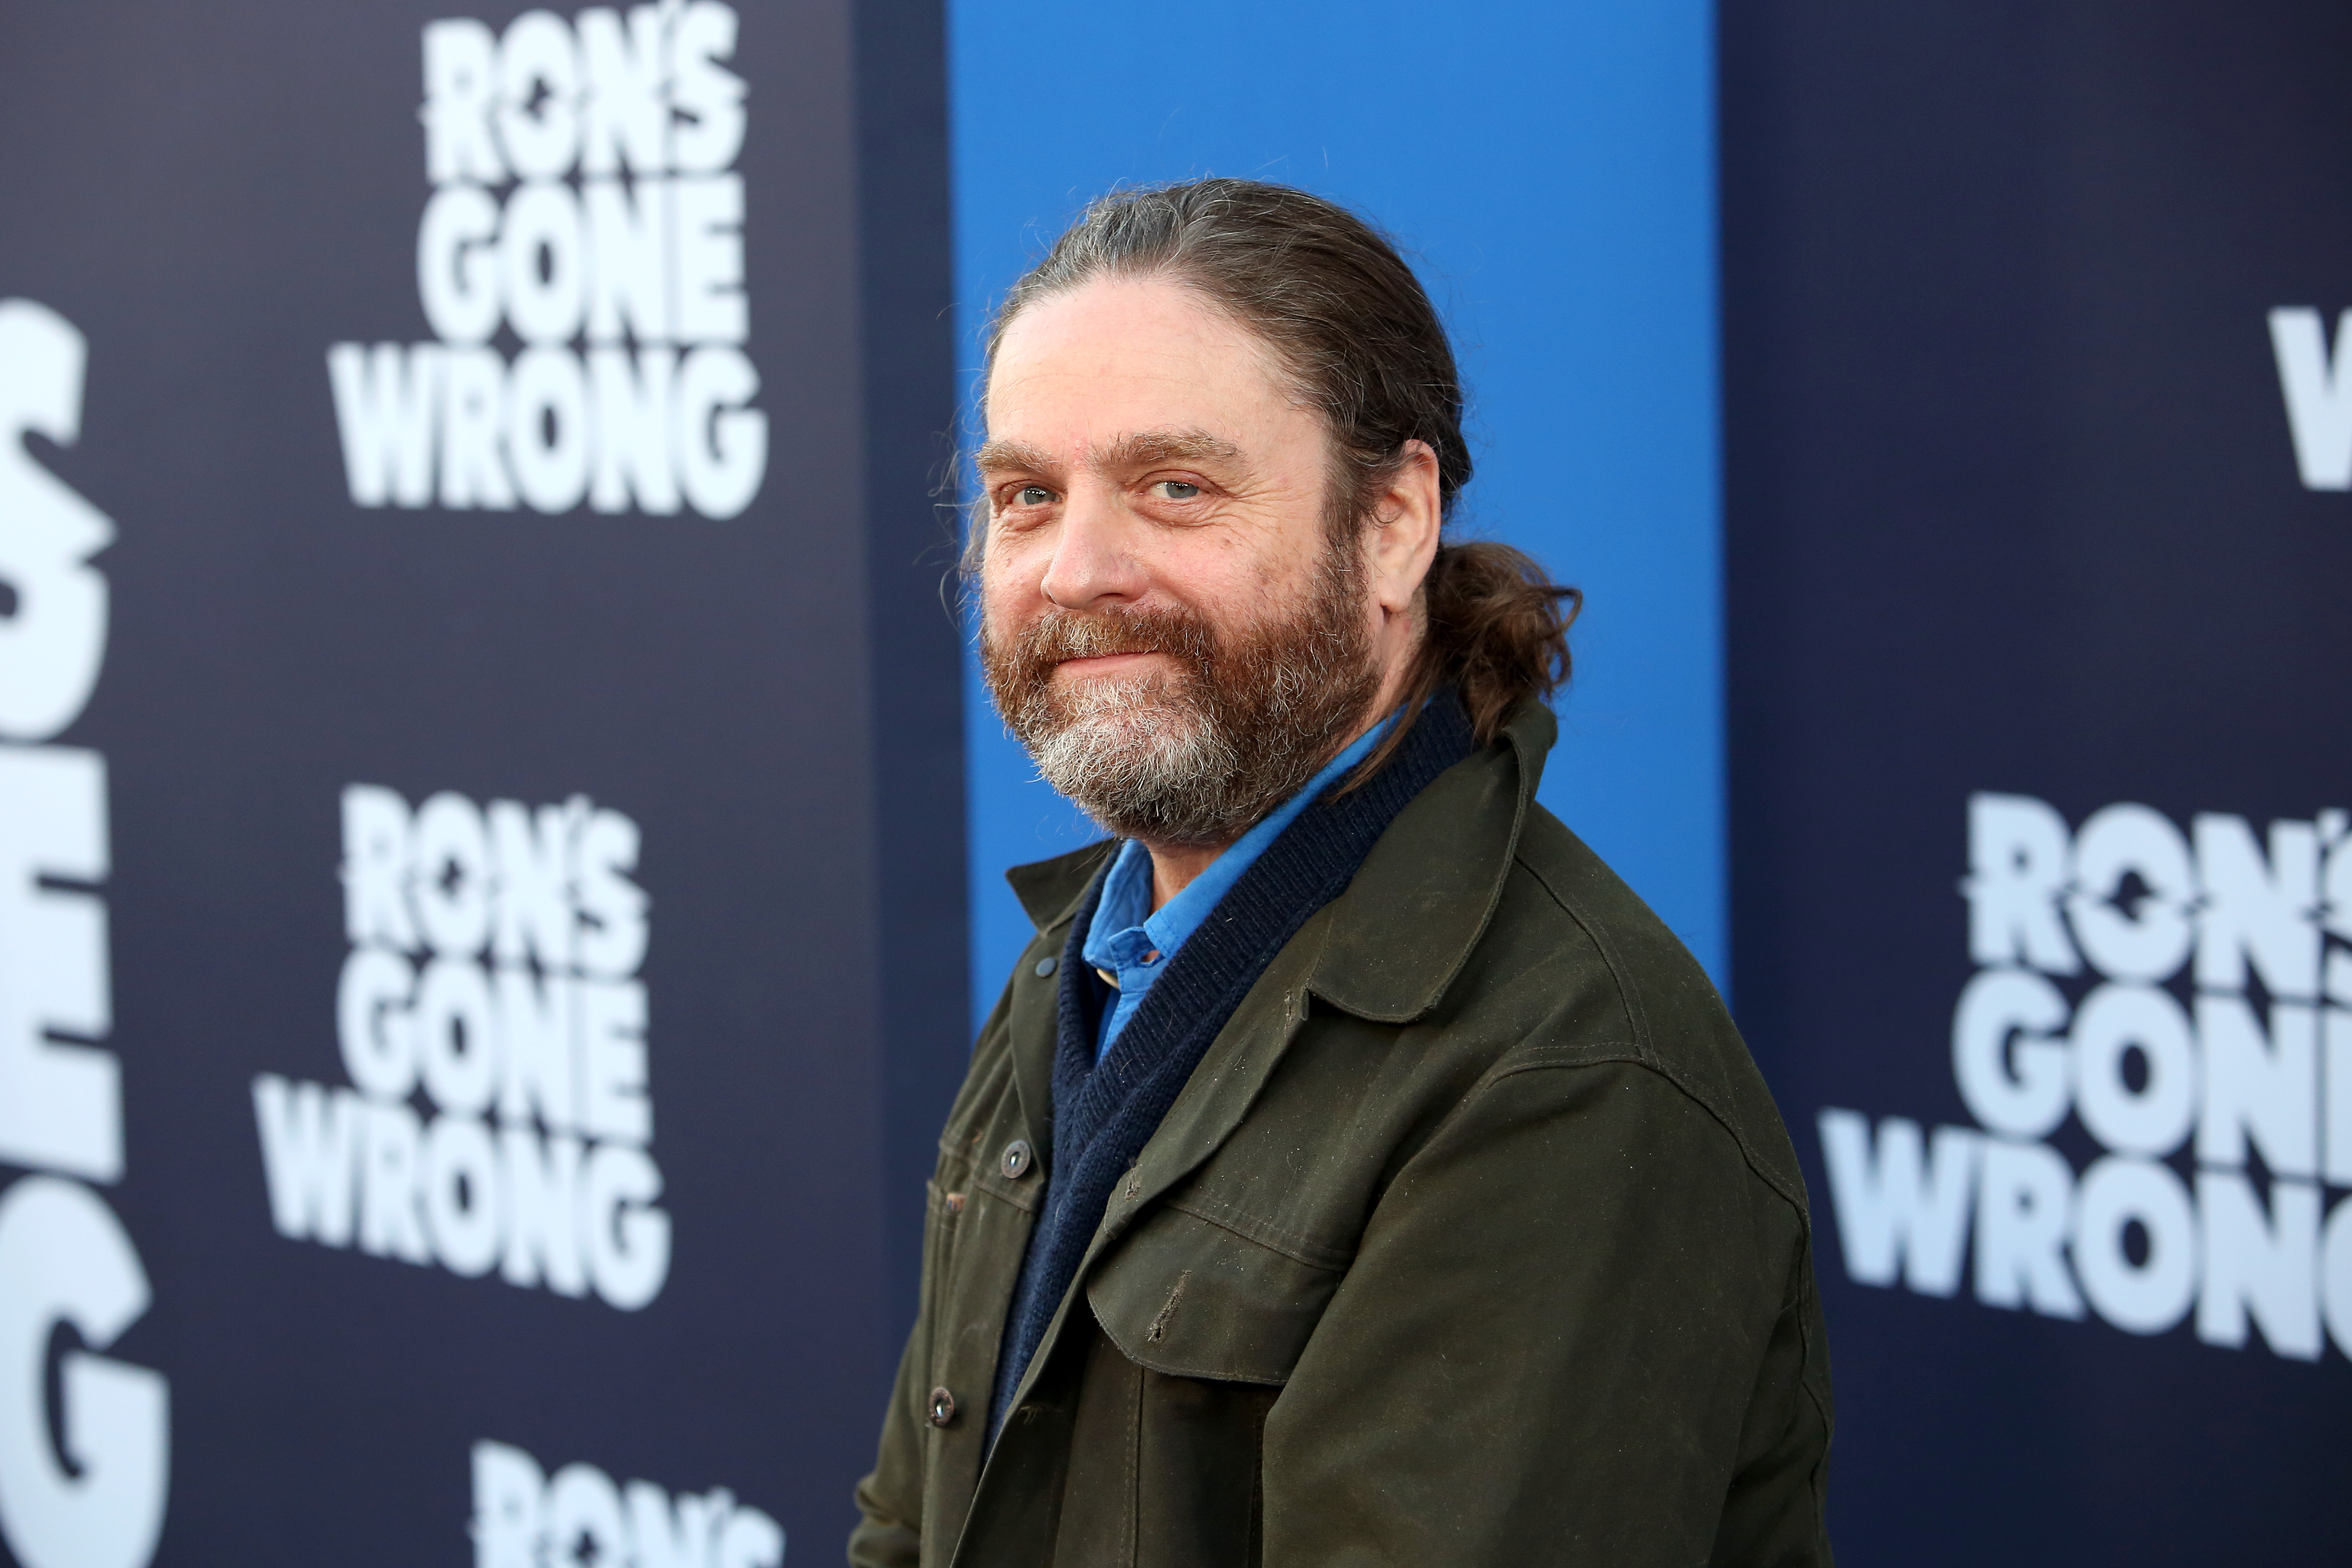 Zach Galifianakis Weighs in on the Negative Effects of Social Media and Texting at the Premiere of 'Ron's Gone Wrong'